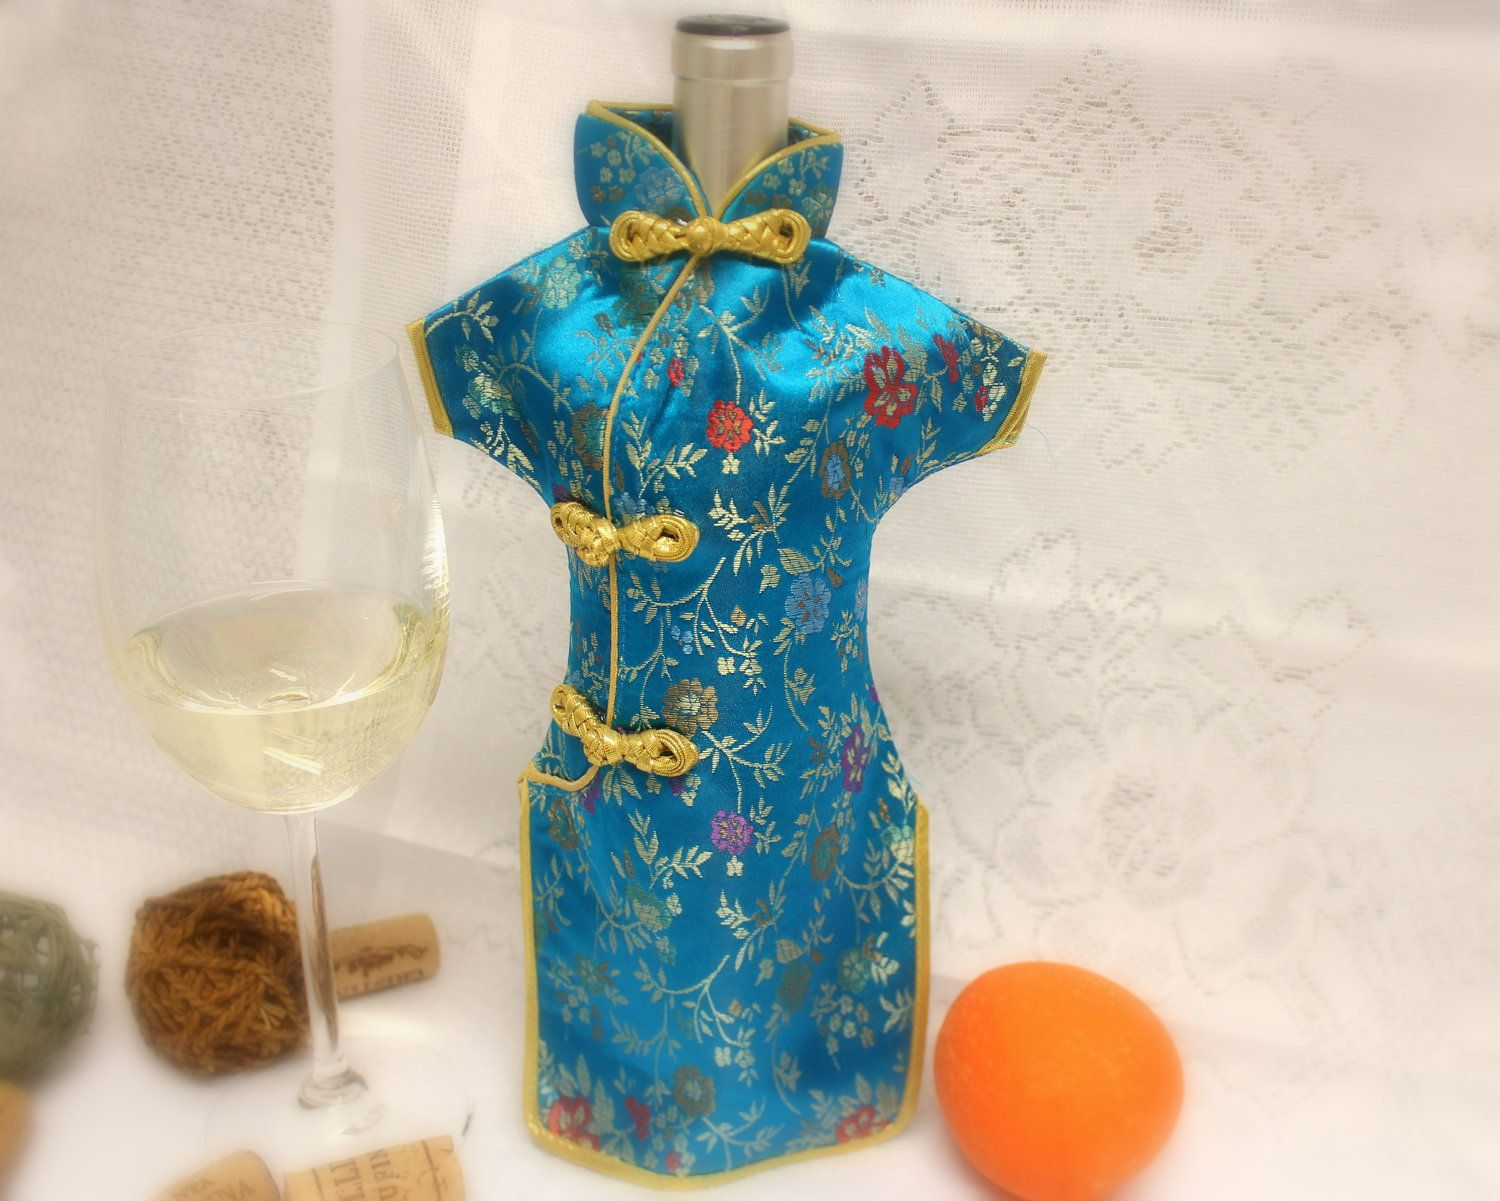 Chinese Dress Wine Bottles Cover | Botellas de vino, Chino y ...